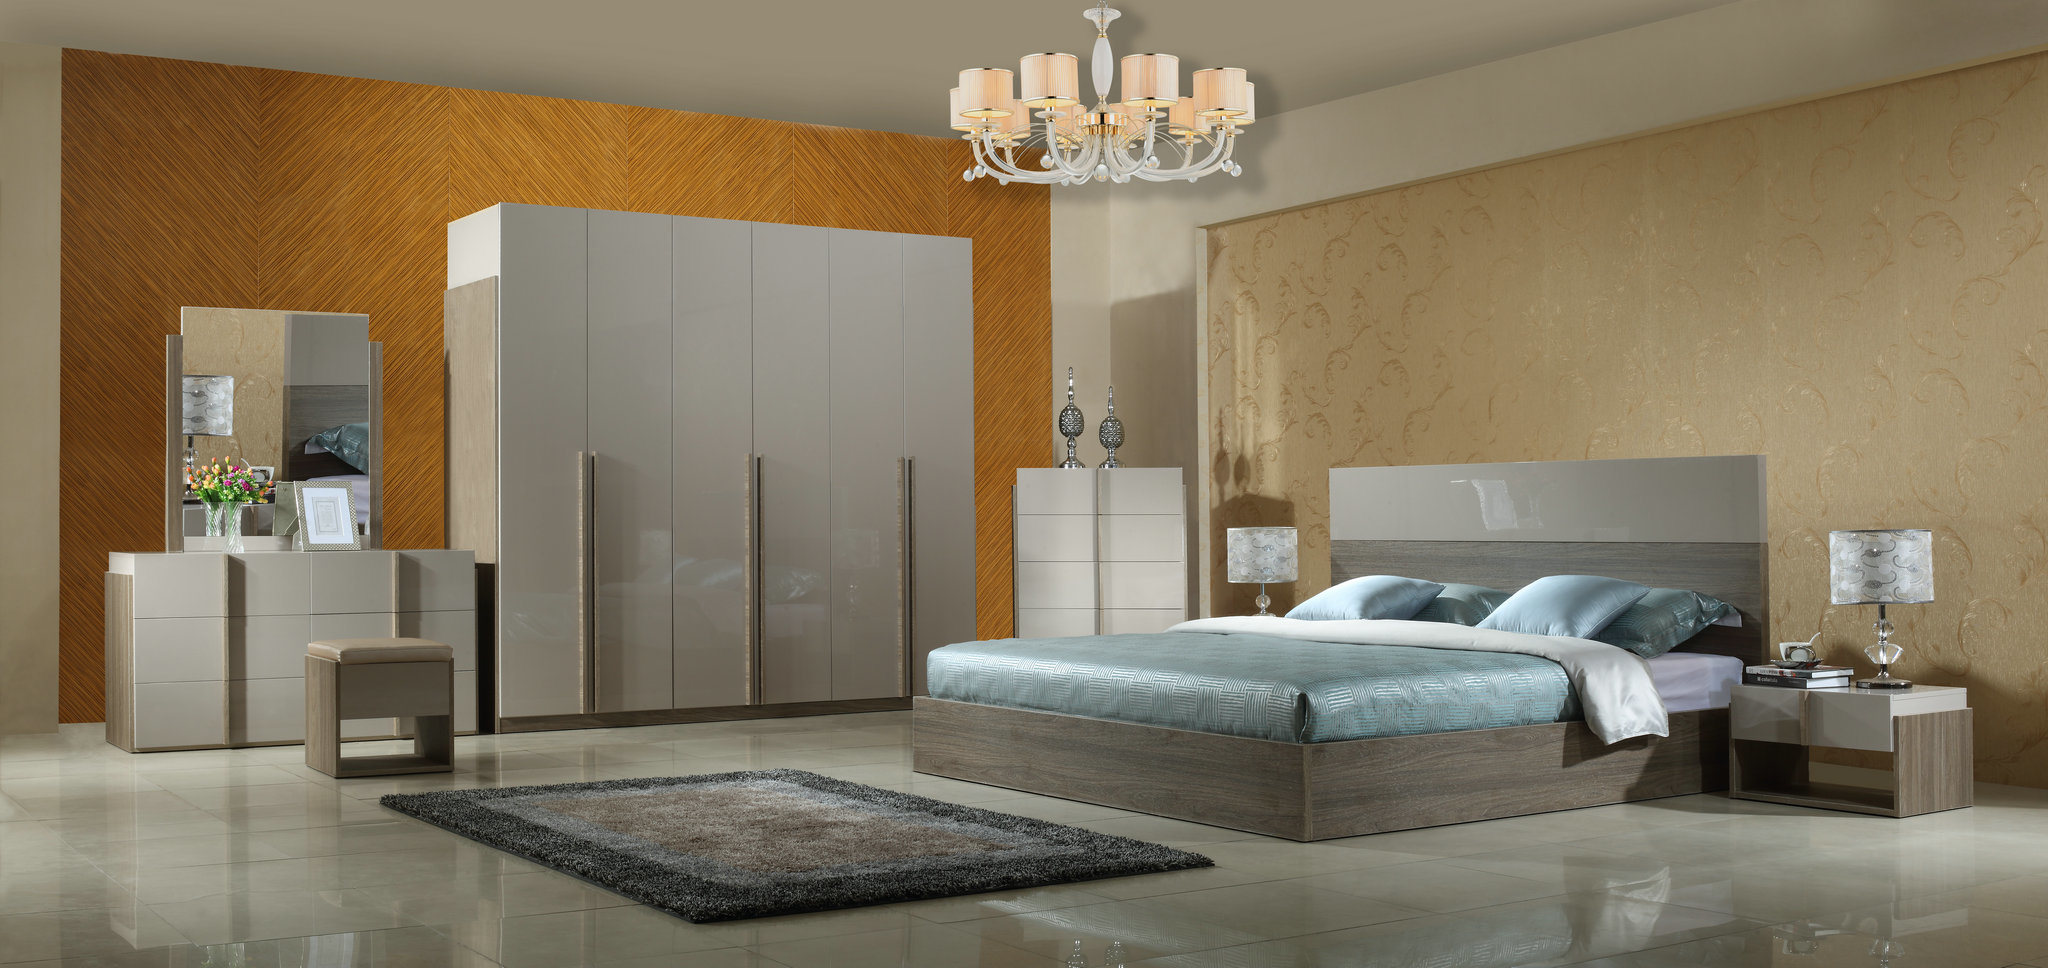 [Hot Item] Modern Simplicity Bedroom Furniture Set with High Quality